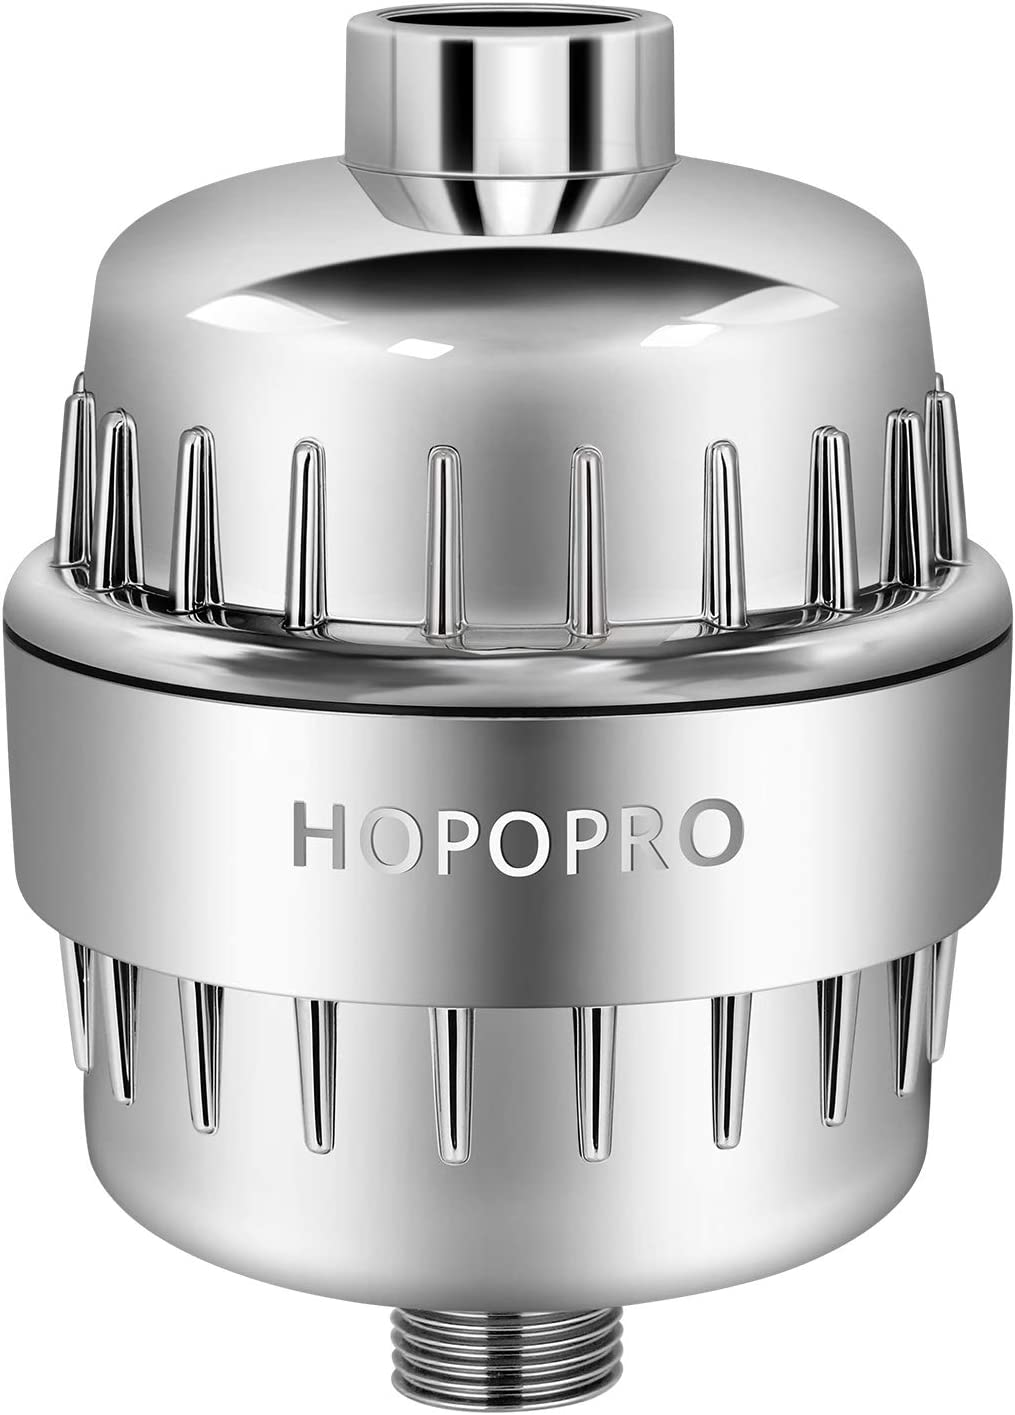 Hopopro 18 Stage Shower Filter $16.56 Coupon